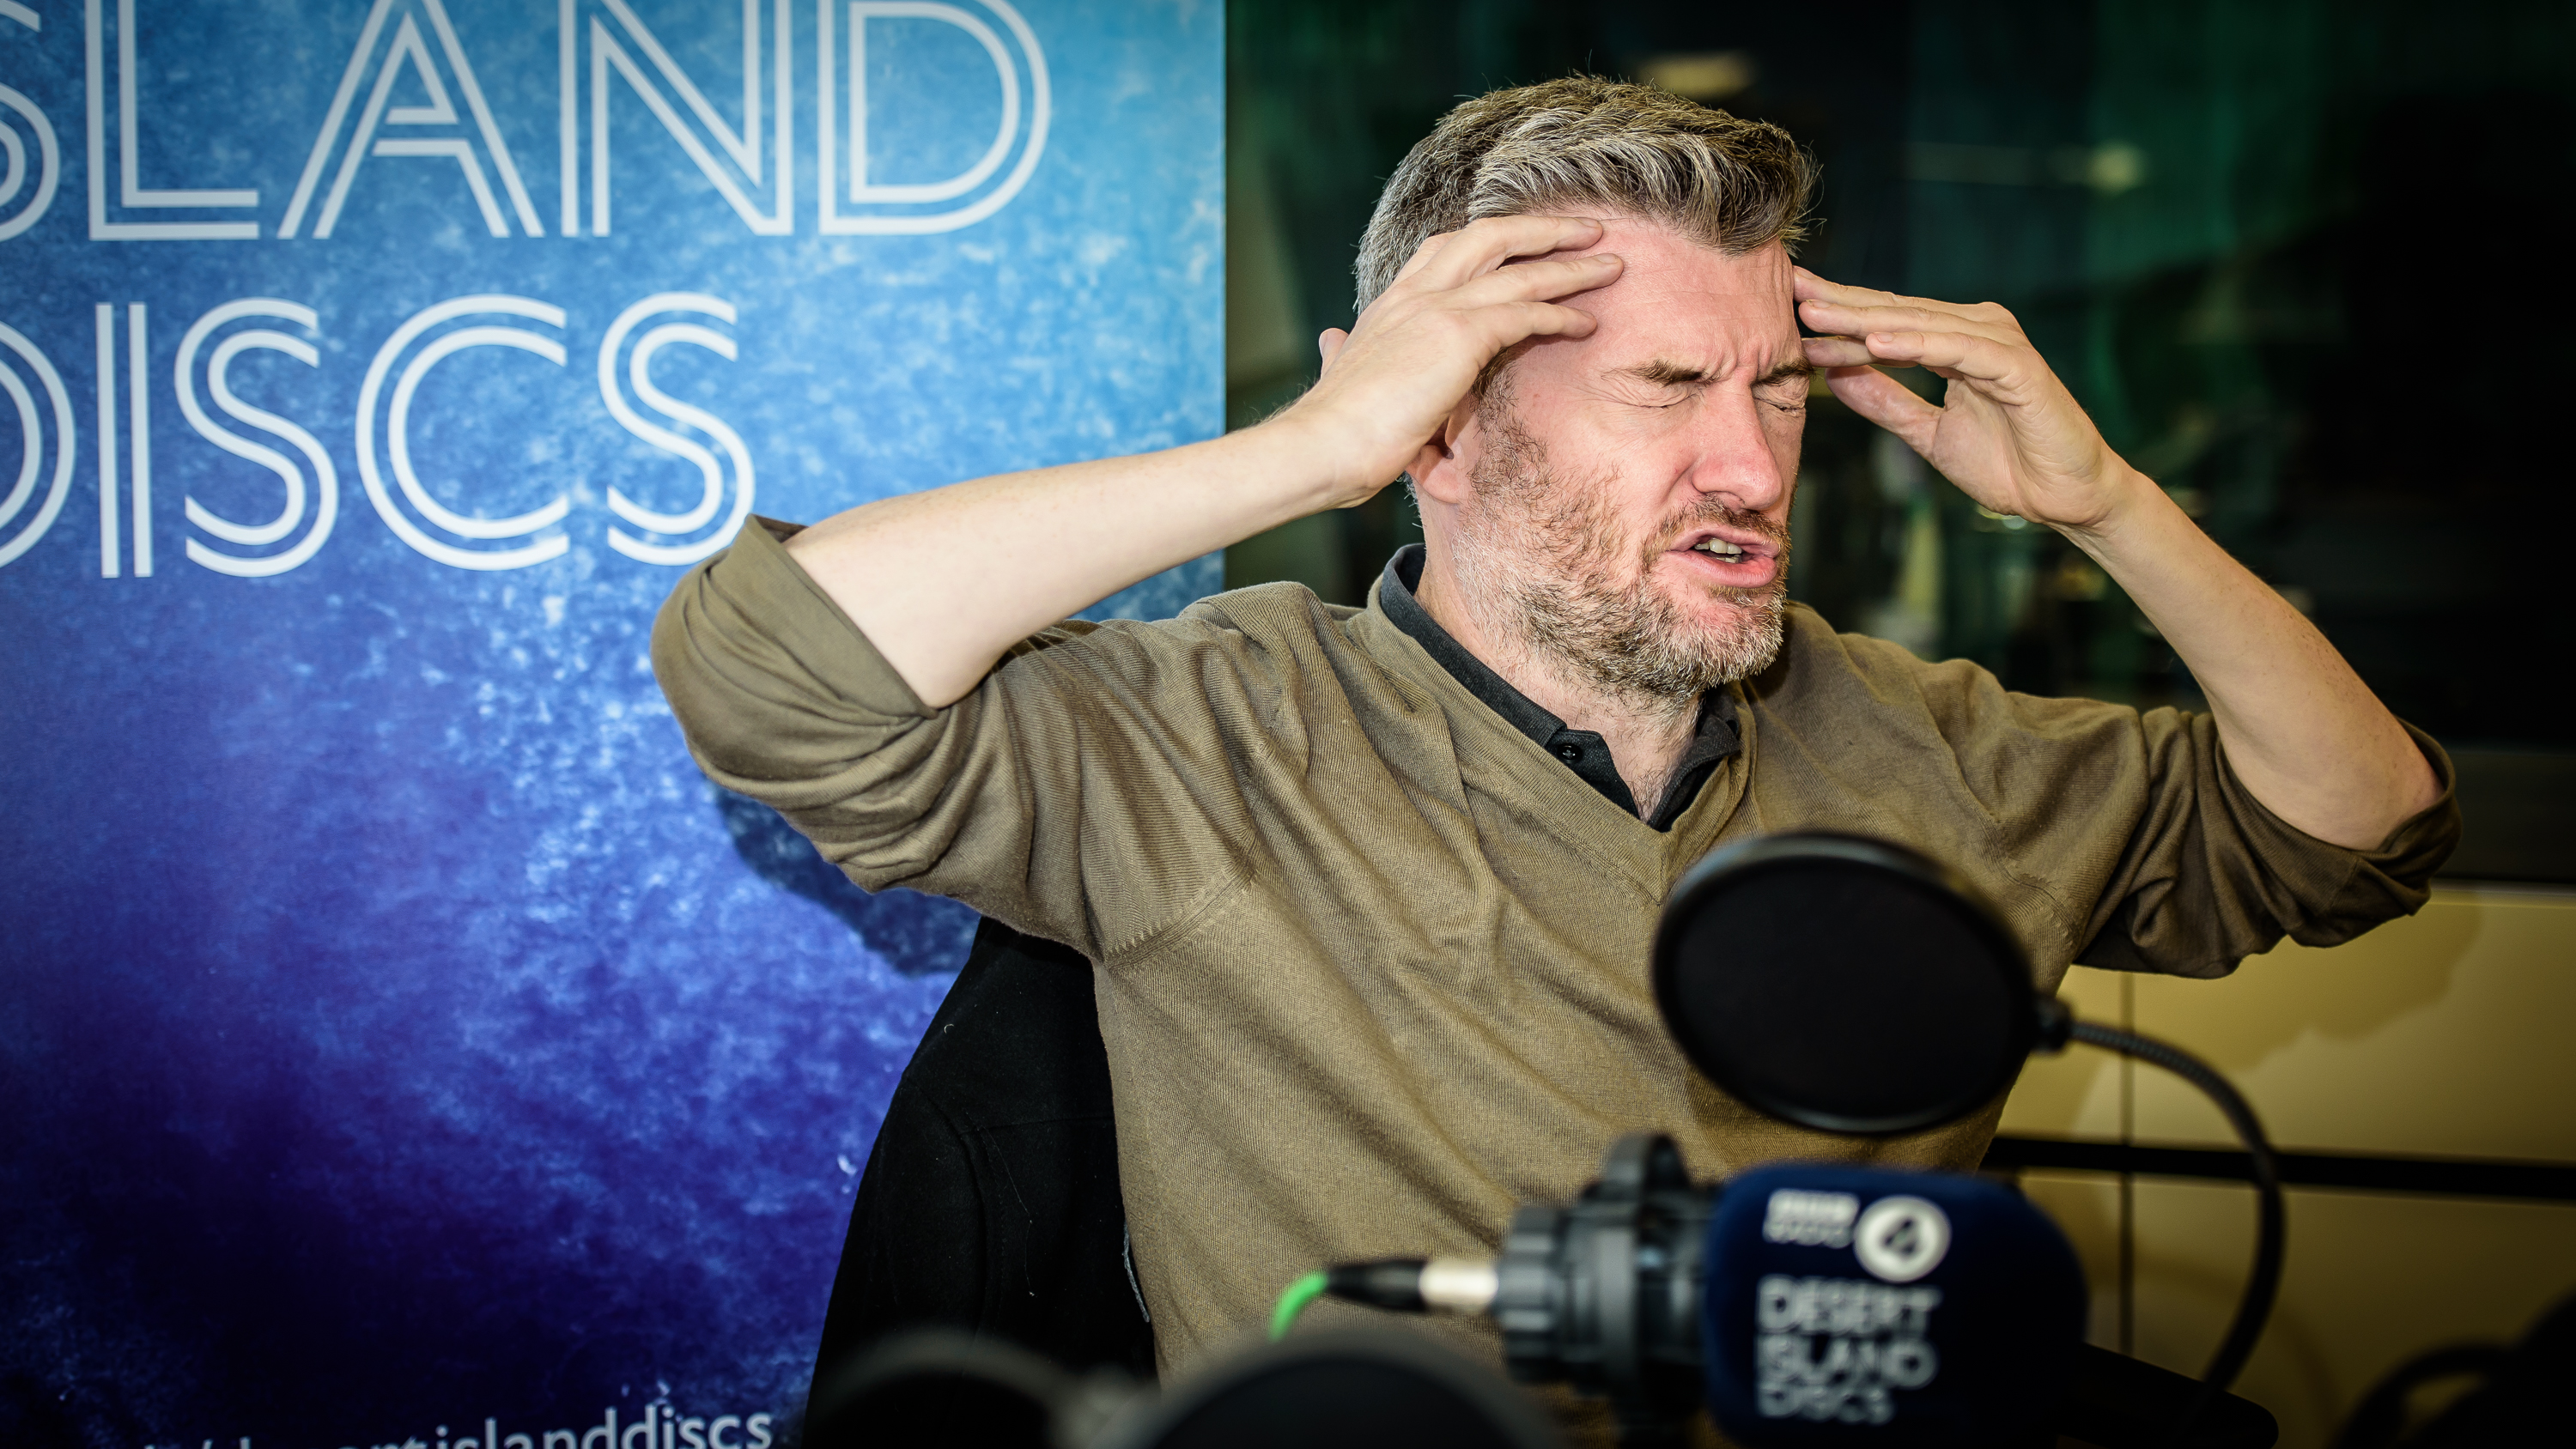 Charlie Brooker on Desert Island Discs